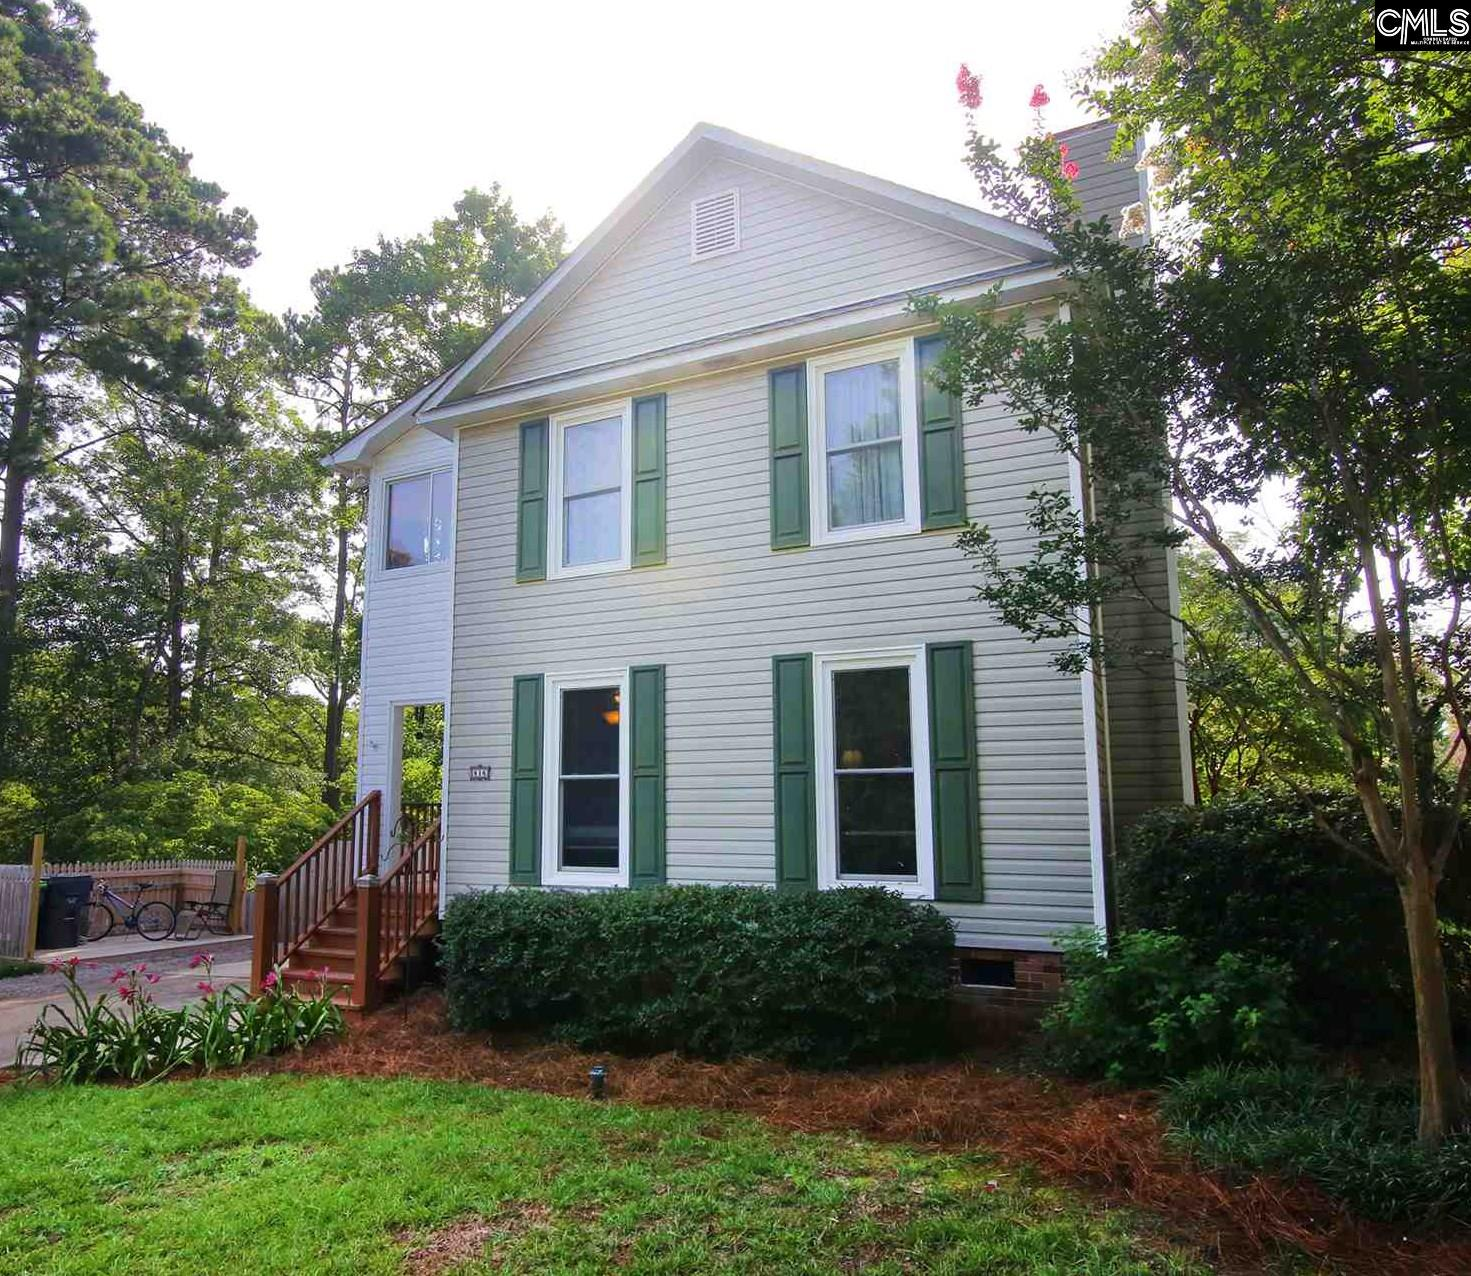 816 Maize Lexington, SC 29072